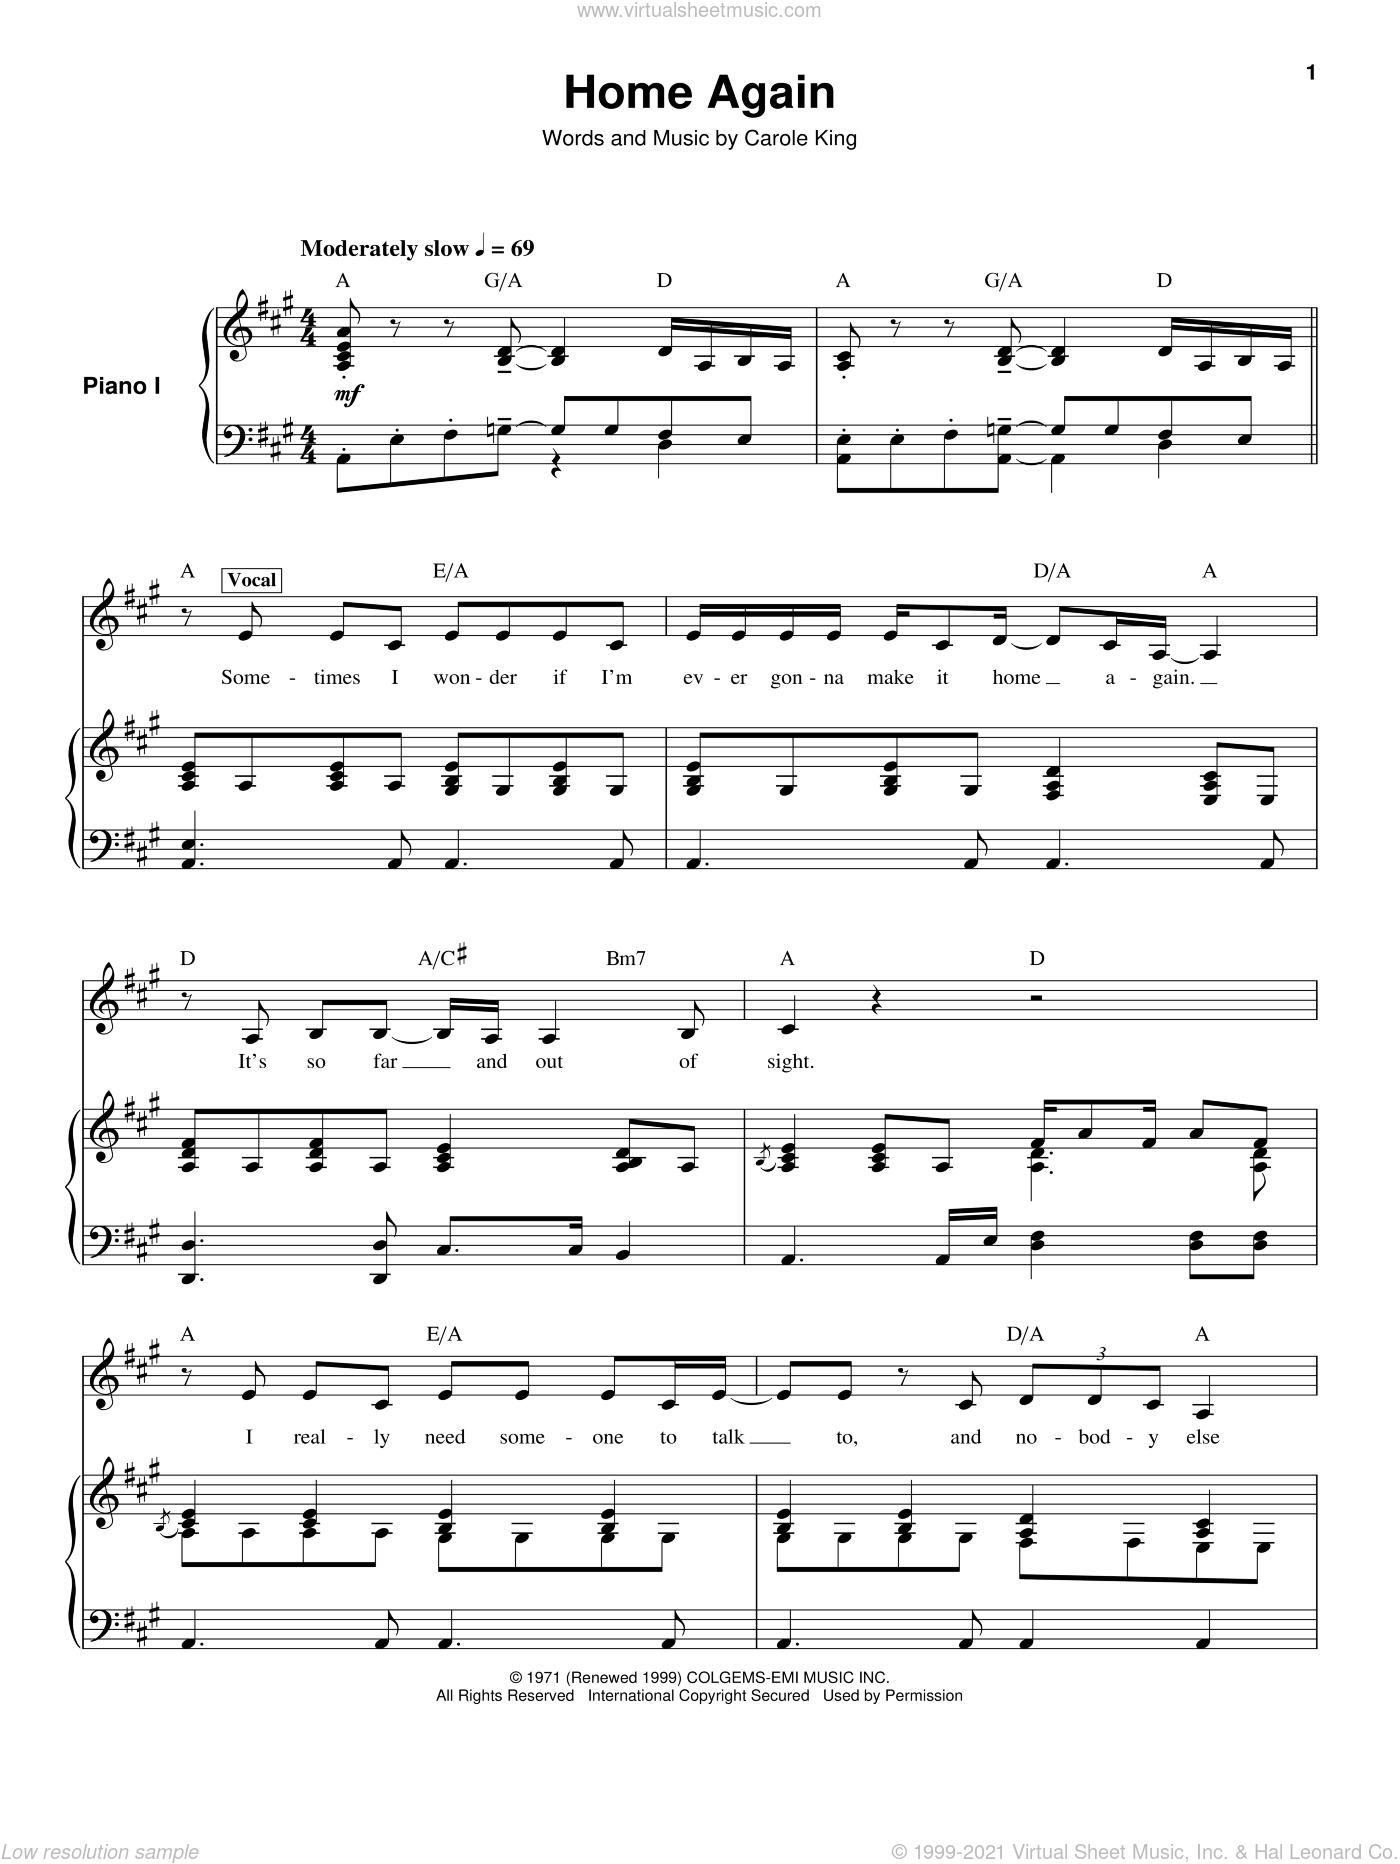 Home Again sheet music for keyboard or piano by Carole King, intermediate skill level